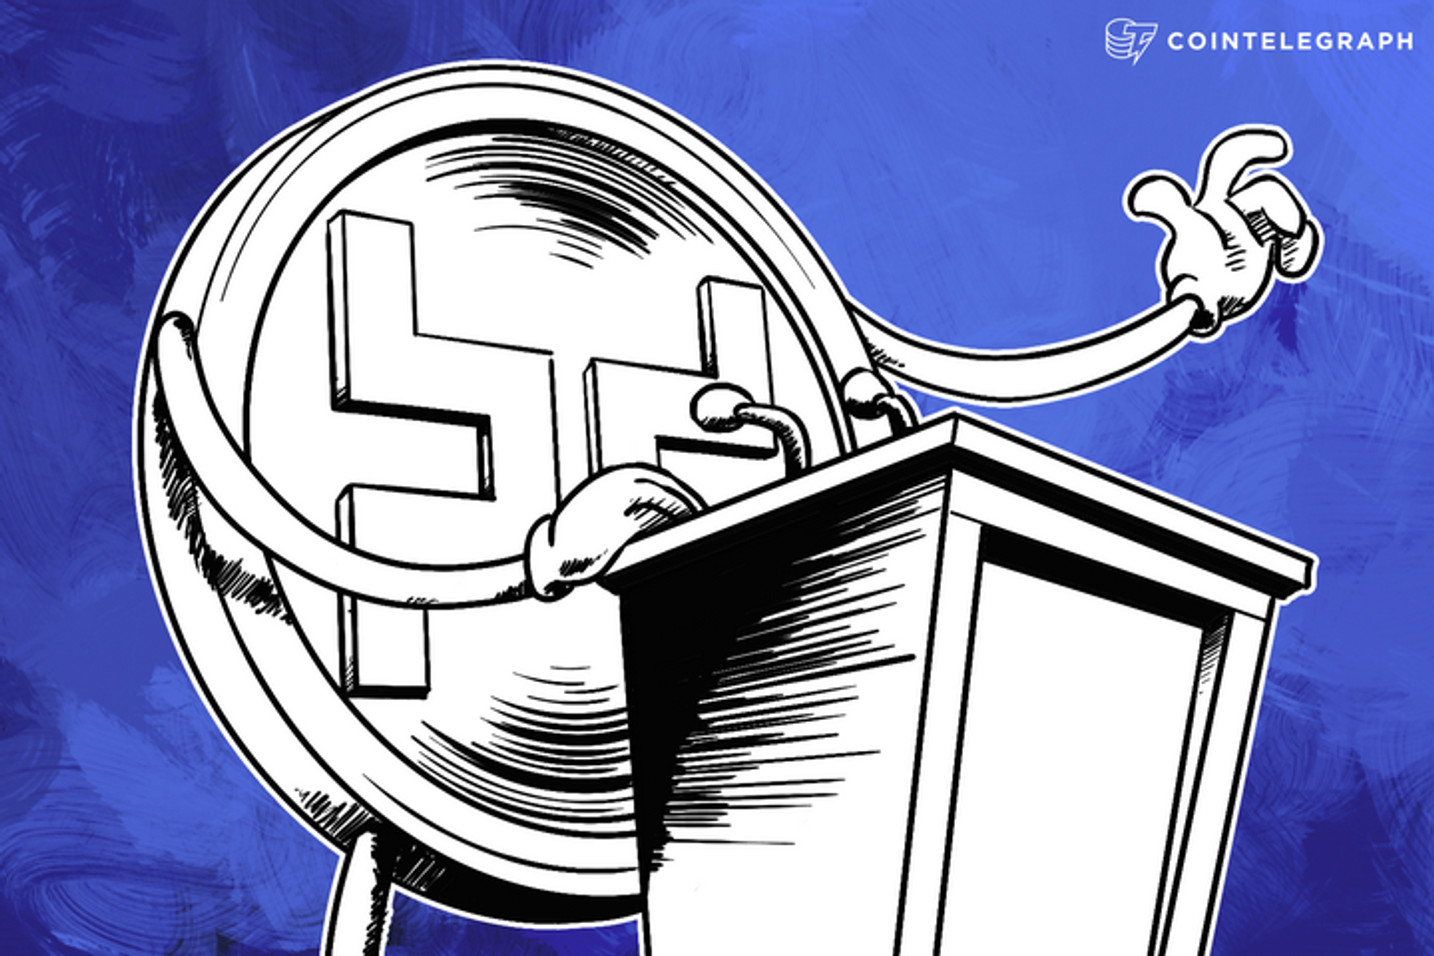 Huobi Talks About Lessons Learned from Socialized Losses